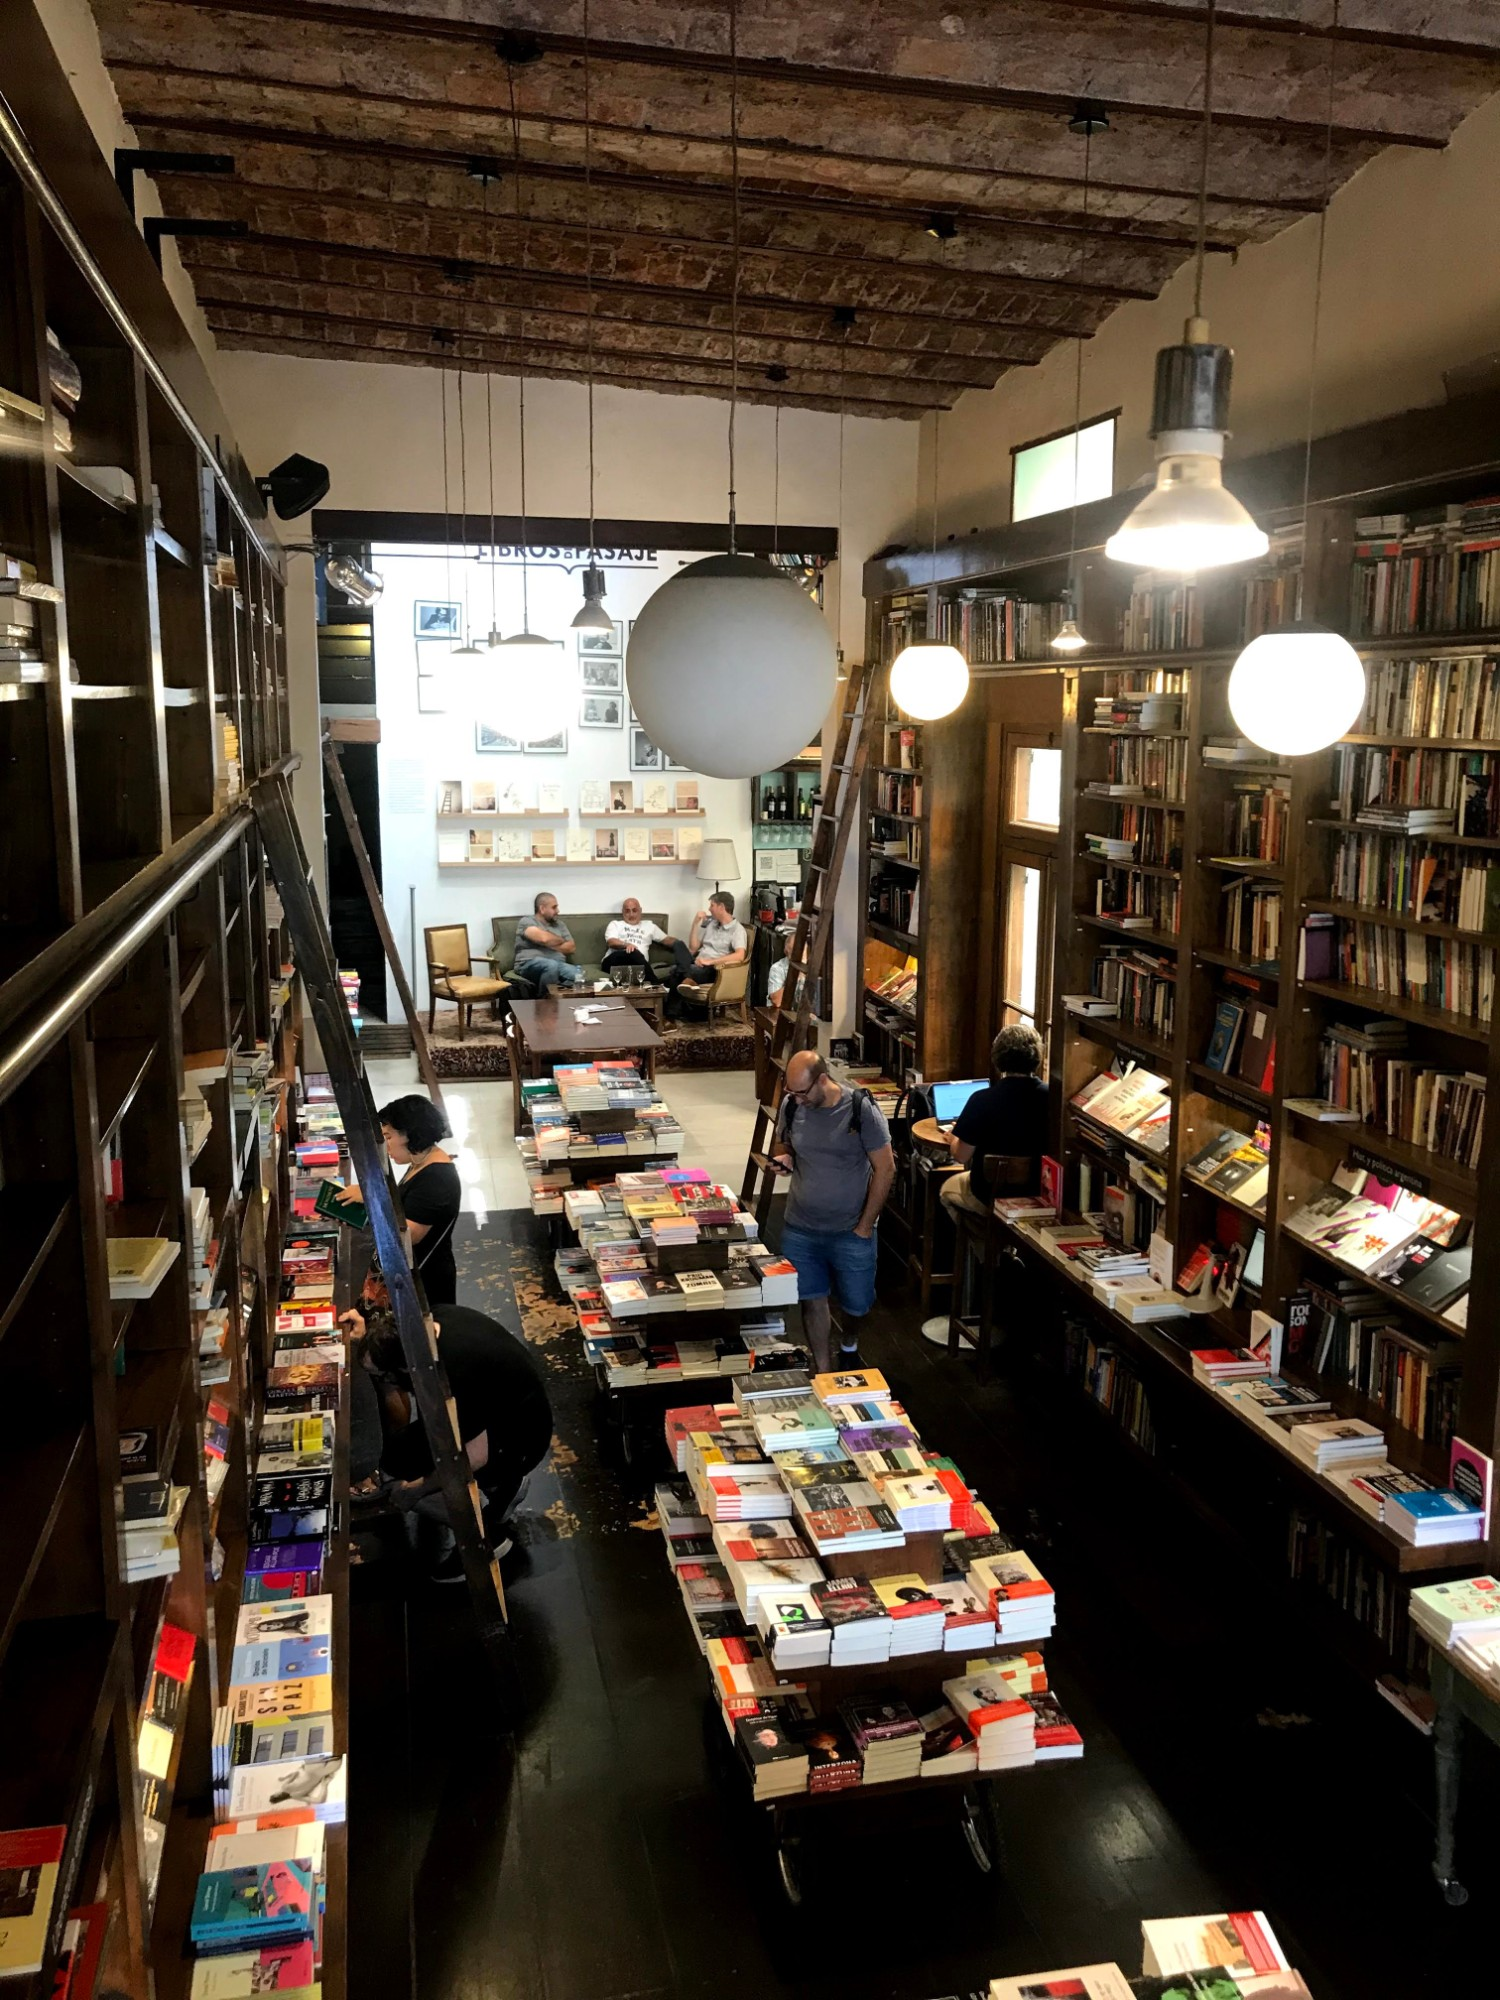 Libros del Pasaje bookshop in Buenos Aires - a travelling book lover's dream come true